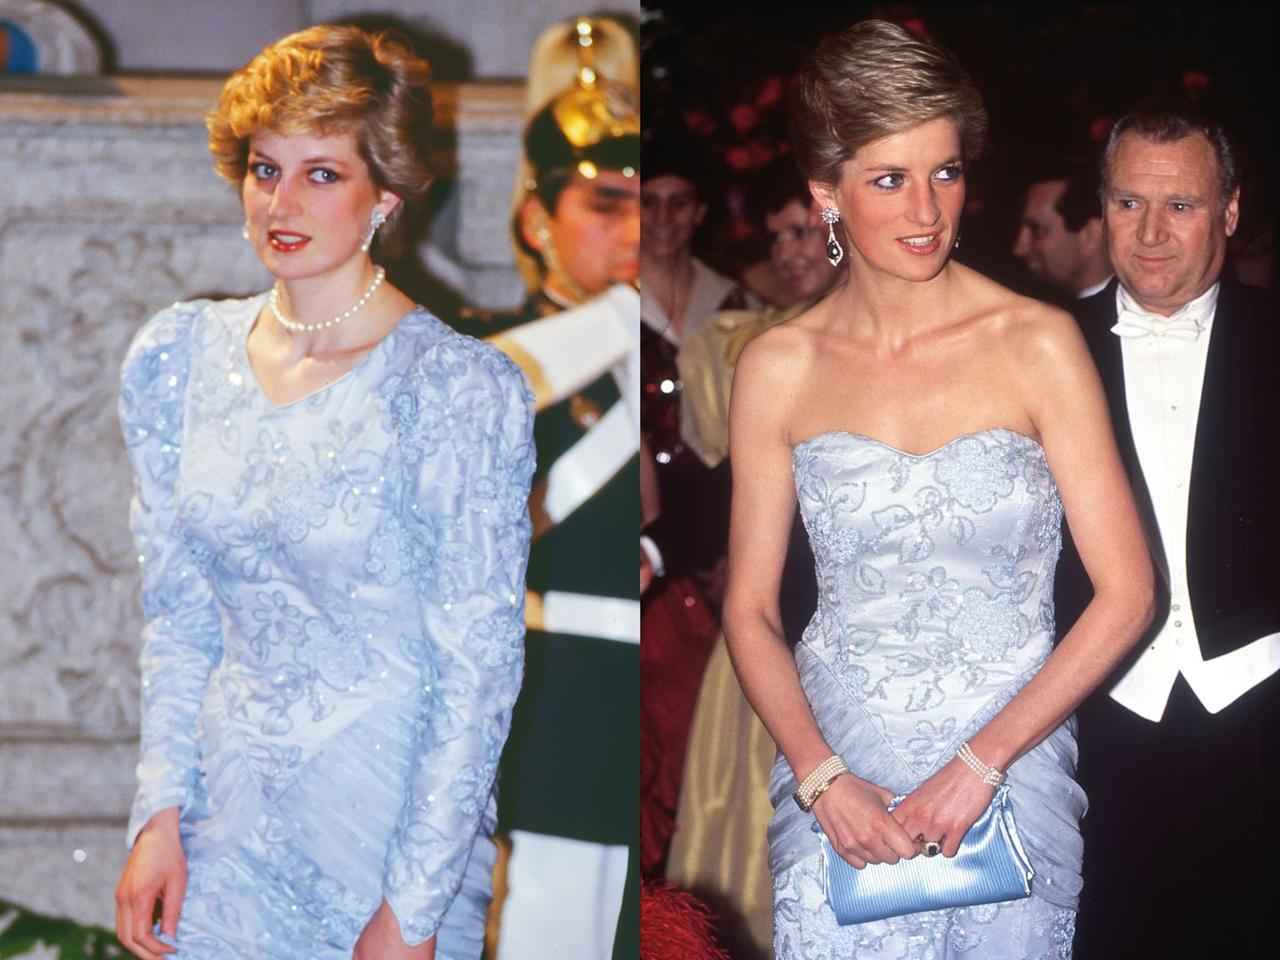 <p>Diana wore this long-sleeved gown for the first time during an official visit to Lisbon, Portugal in 1987. She then remade the dress, removing the sleeves and re-crafting it with a heart-shaped strapless neckline to wear to a charity ball two years later in 1989.</p>